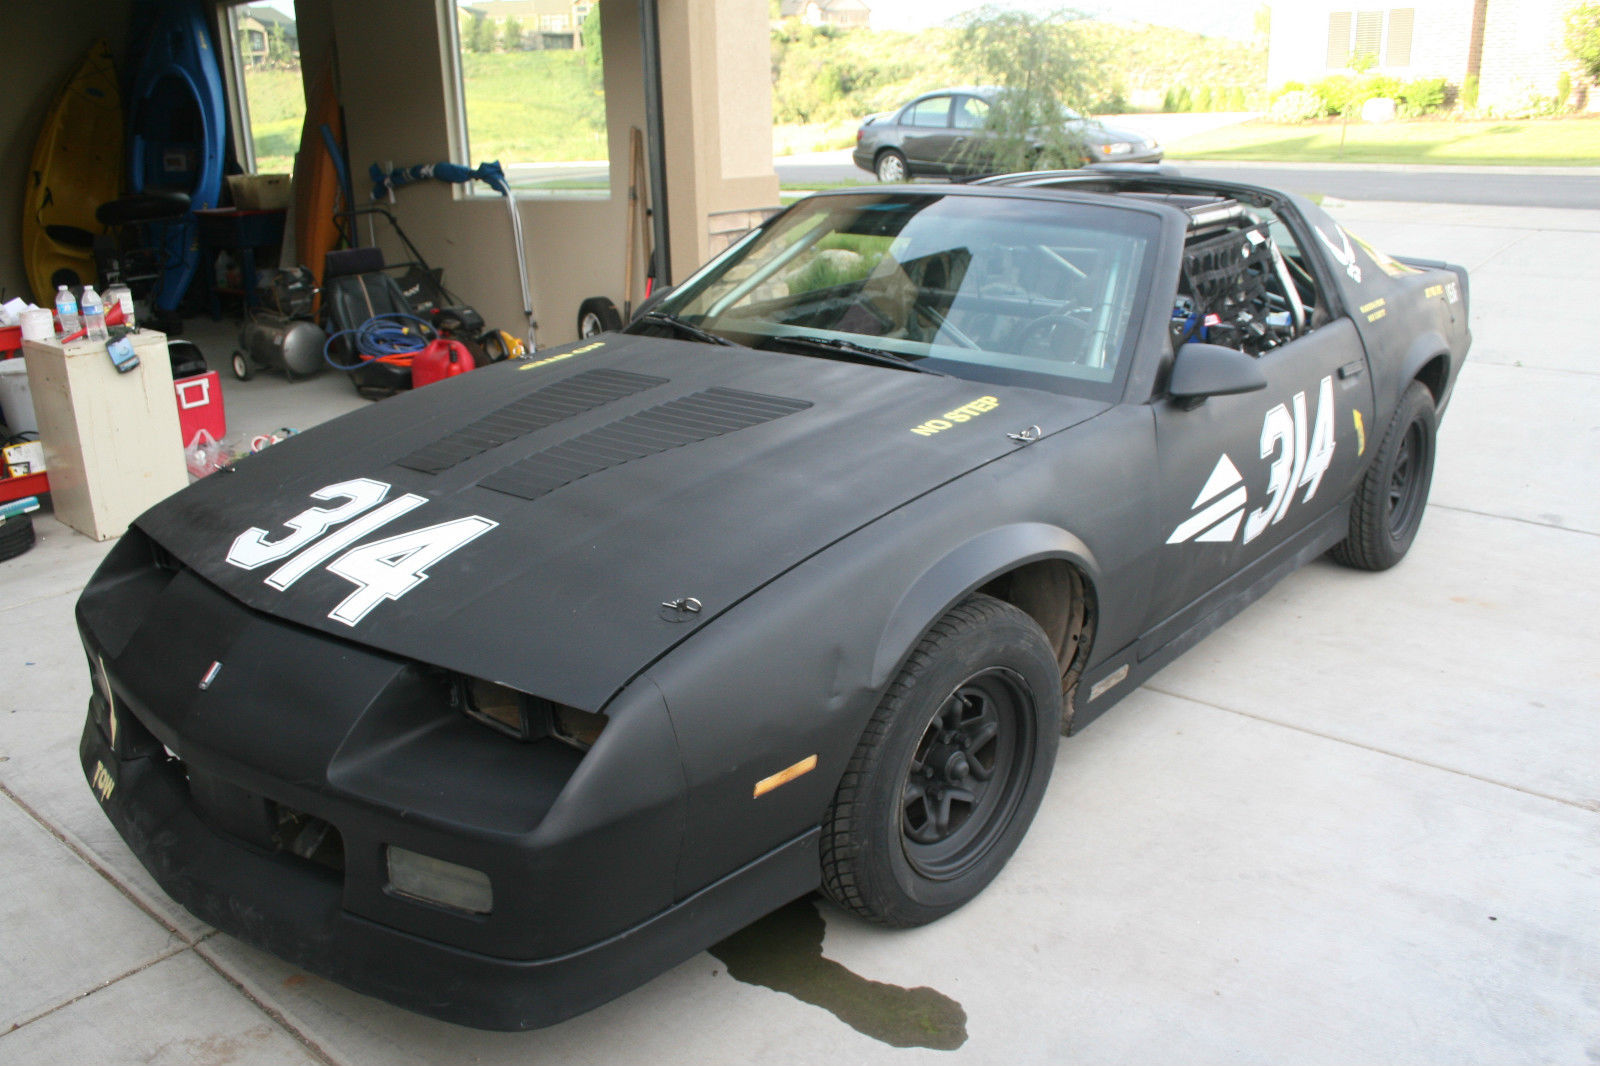 1986 chevrolet camaro z28 iroc race car 24 hrs lemons racer autocross. Black Bedroom Furniture Sets. Home Design Ideas